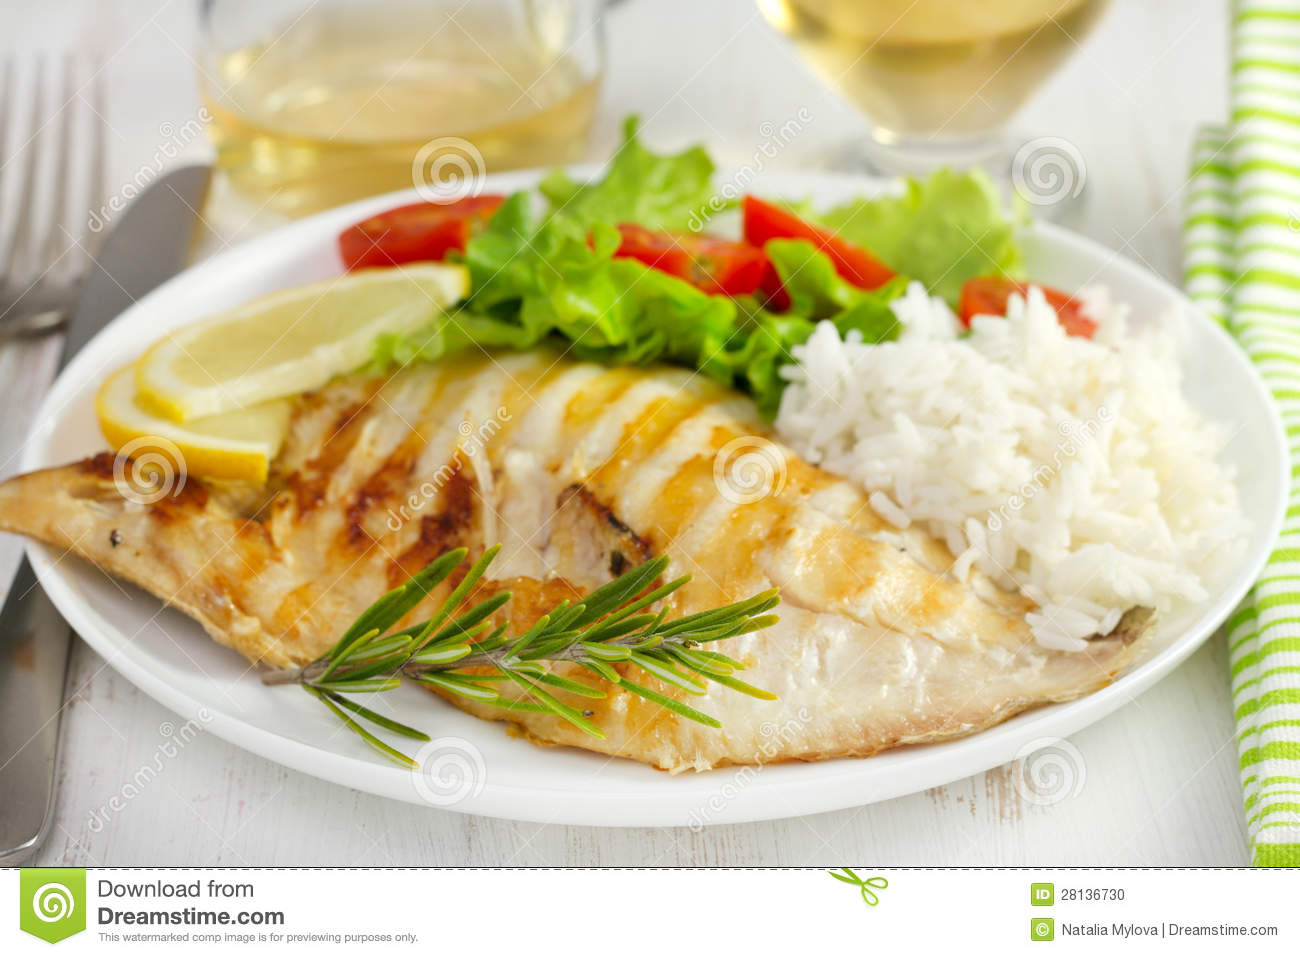 Grilled fish with boiled rice and salad stock photo for Fish and salad